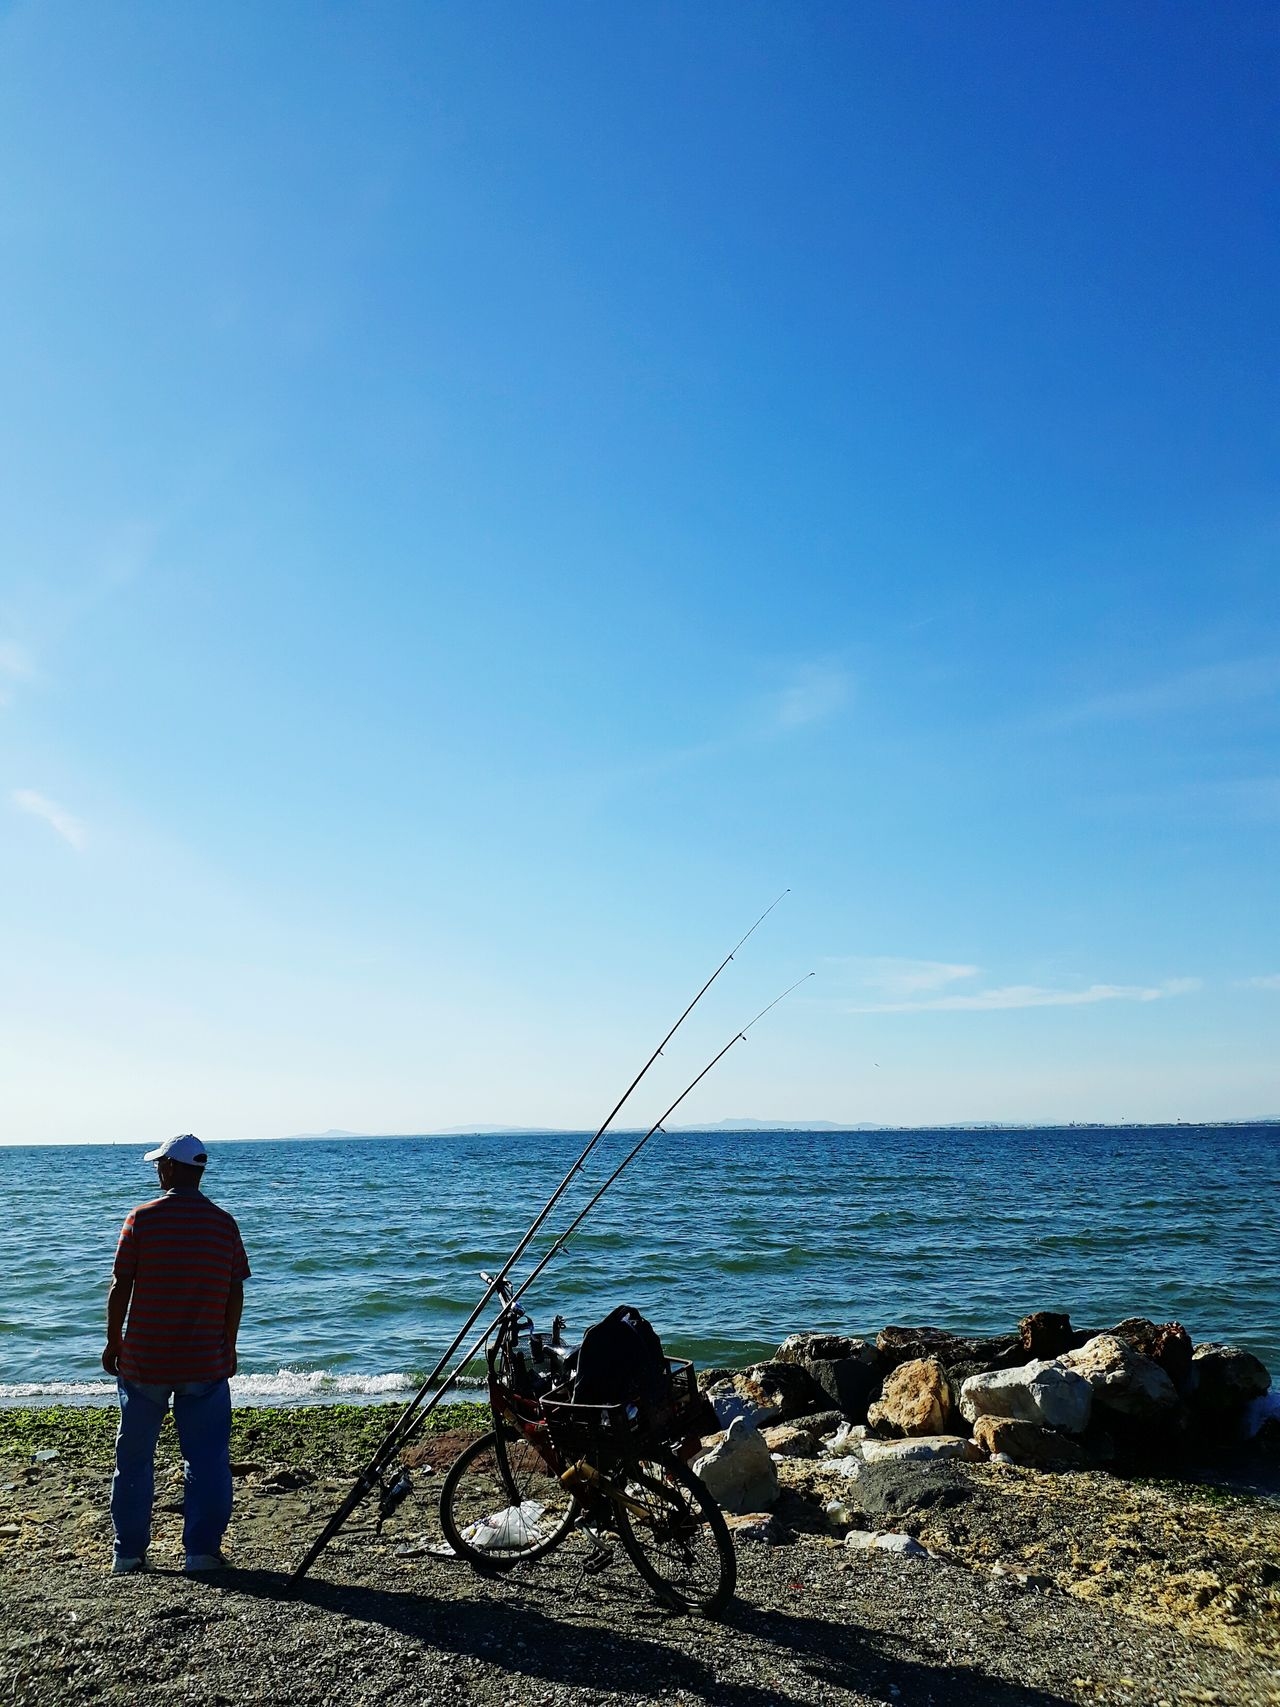 Sea Horizon Over Water Silhouette Tranquil Scene Fishing Fishing Tackle Clear Sky Outdoors Summer Checkthis Out Places I've Been Today Dramatic Sky Taking Pictures Takingphotos Taking Photos Scenics Silhouette